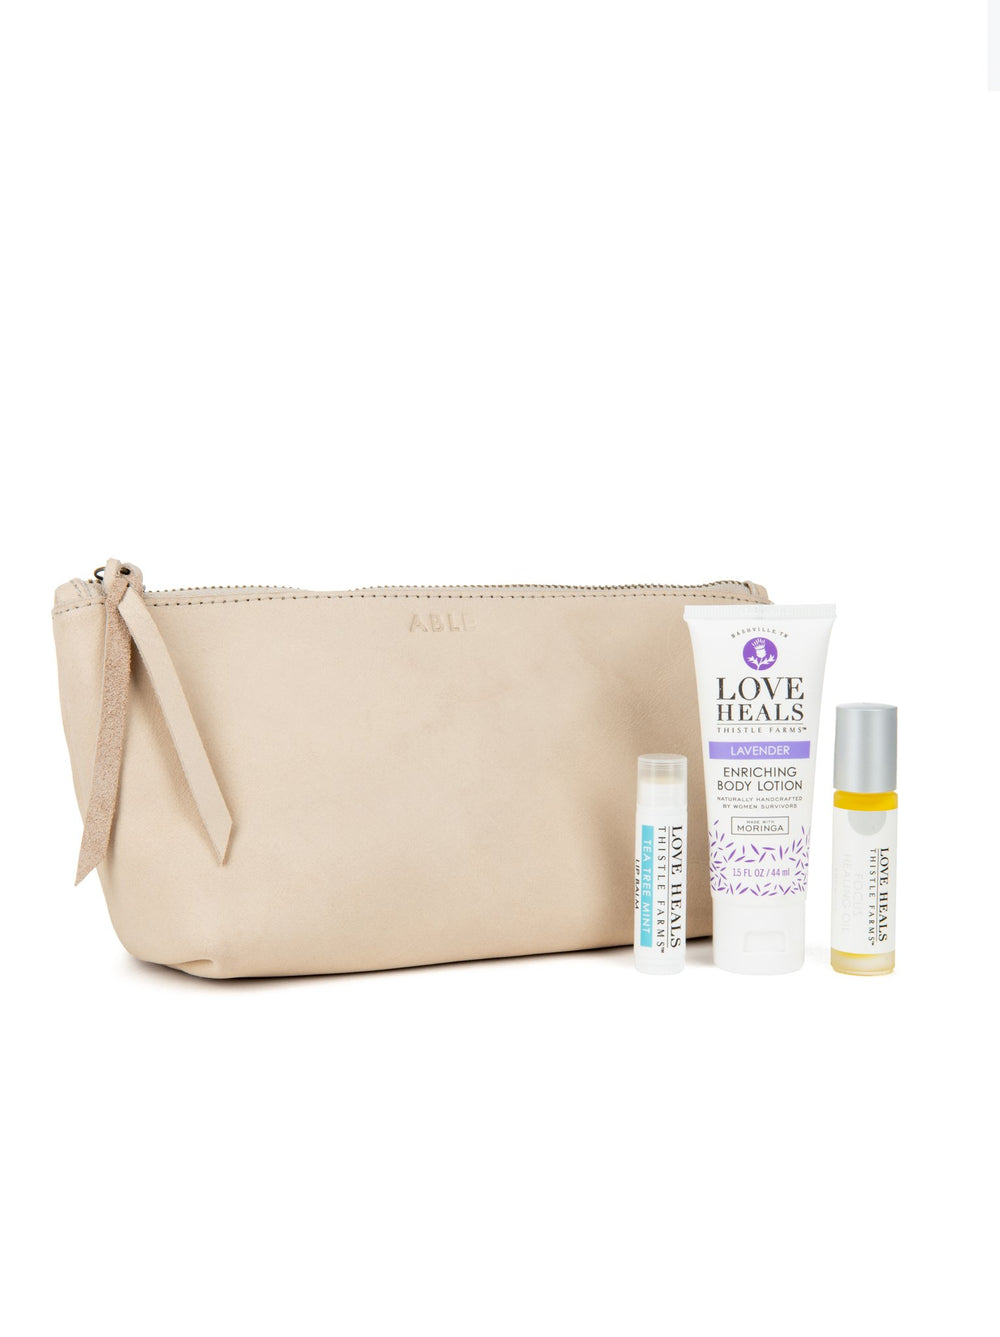 ABLE x Thistle Farms Hydration Essentials Set